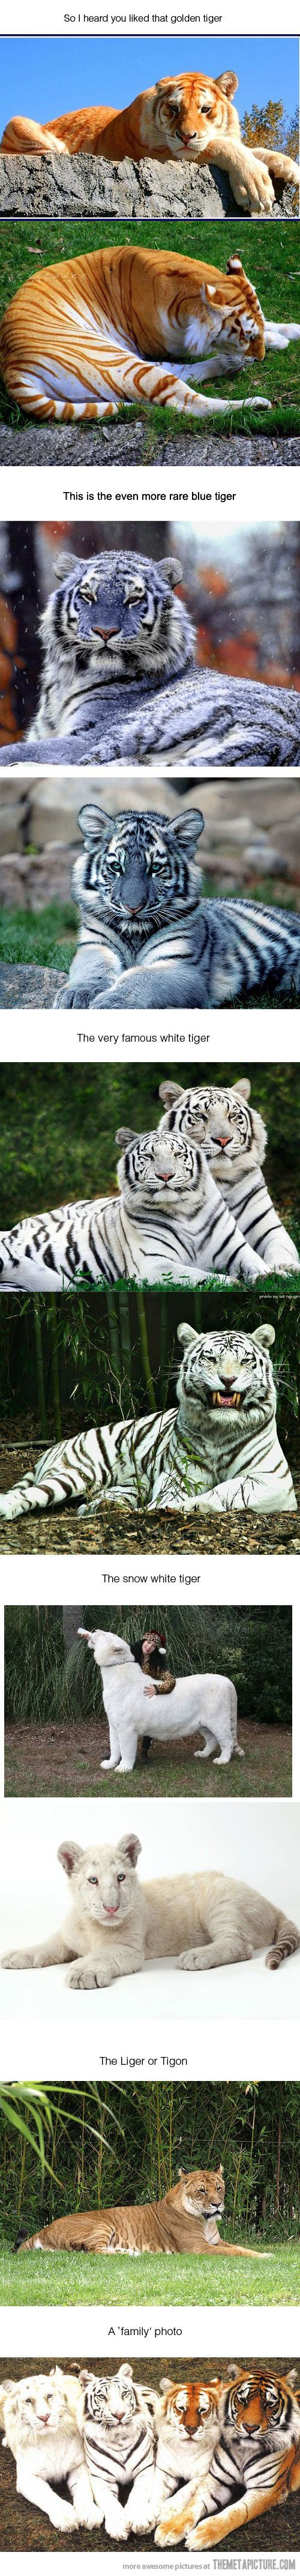 Tigers are my most favorite animals. I'm not sure about the blue tigers but all the rest are beautiful!